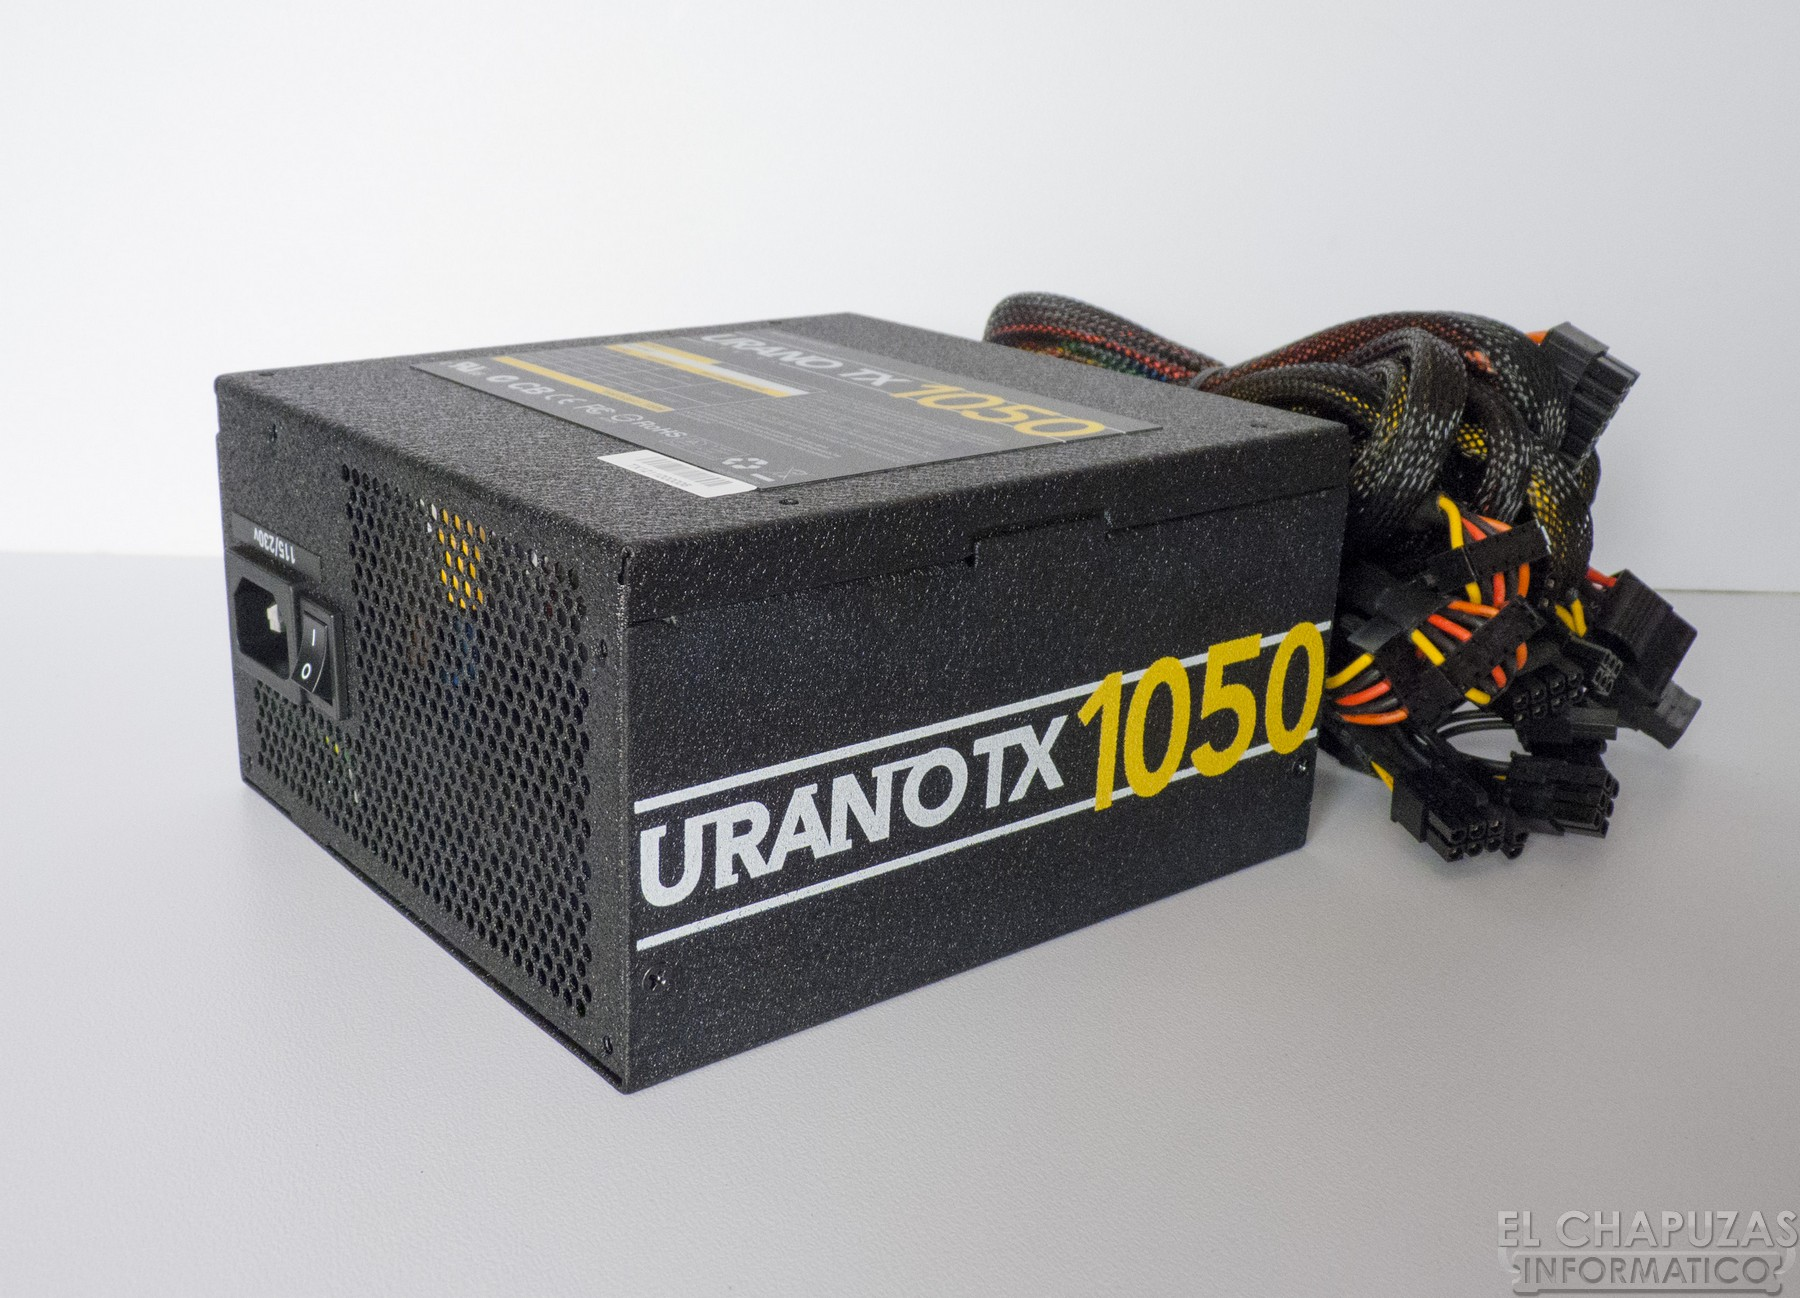 Review: Nox Urano TX 1050